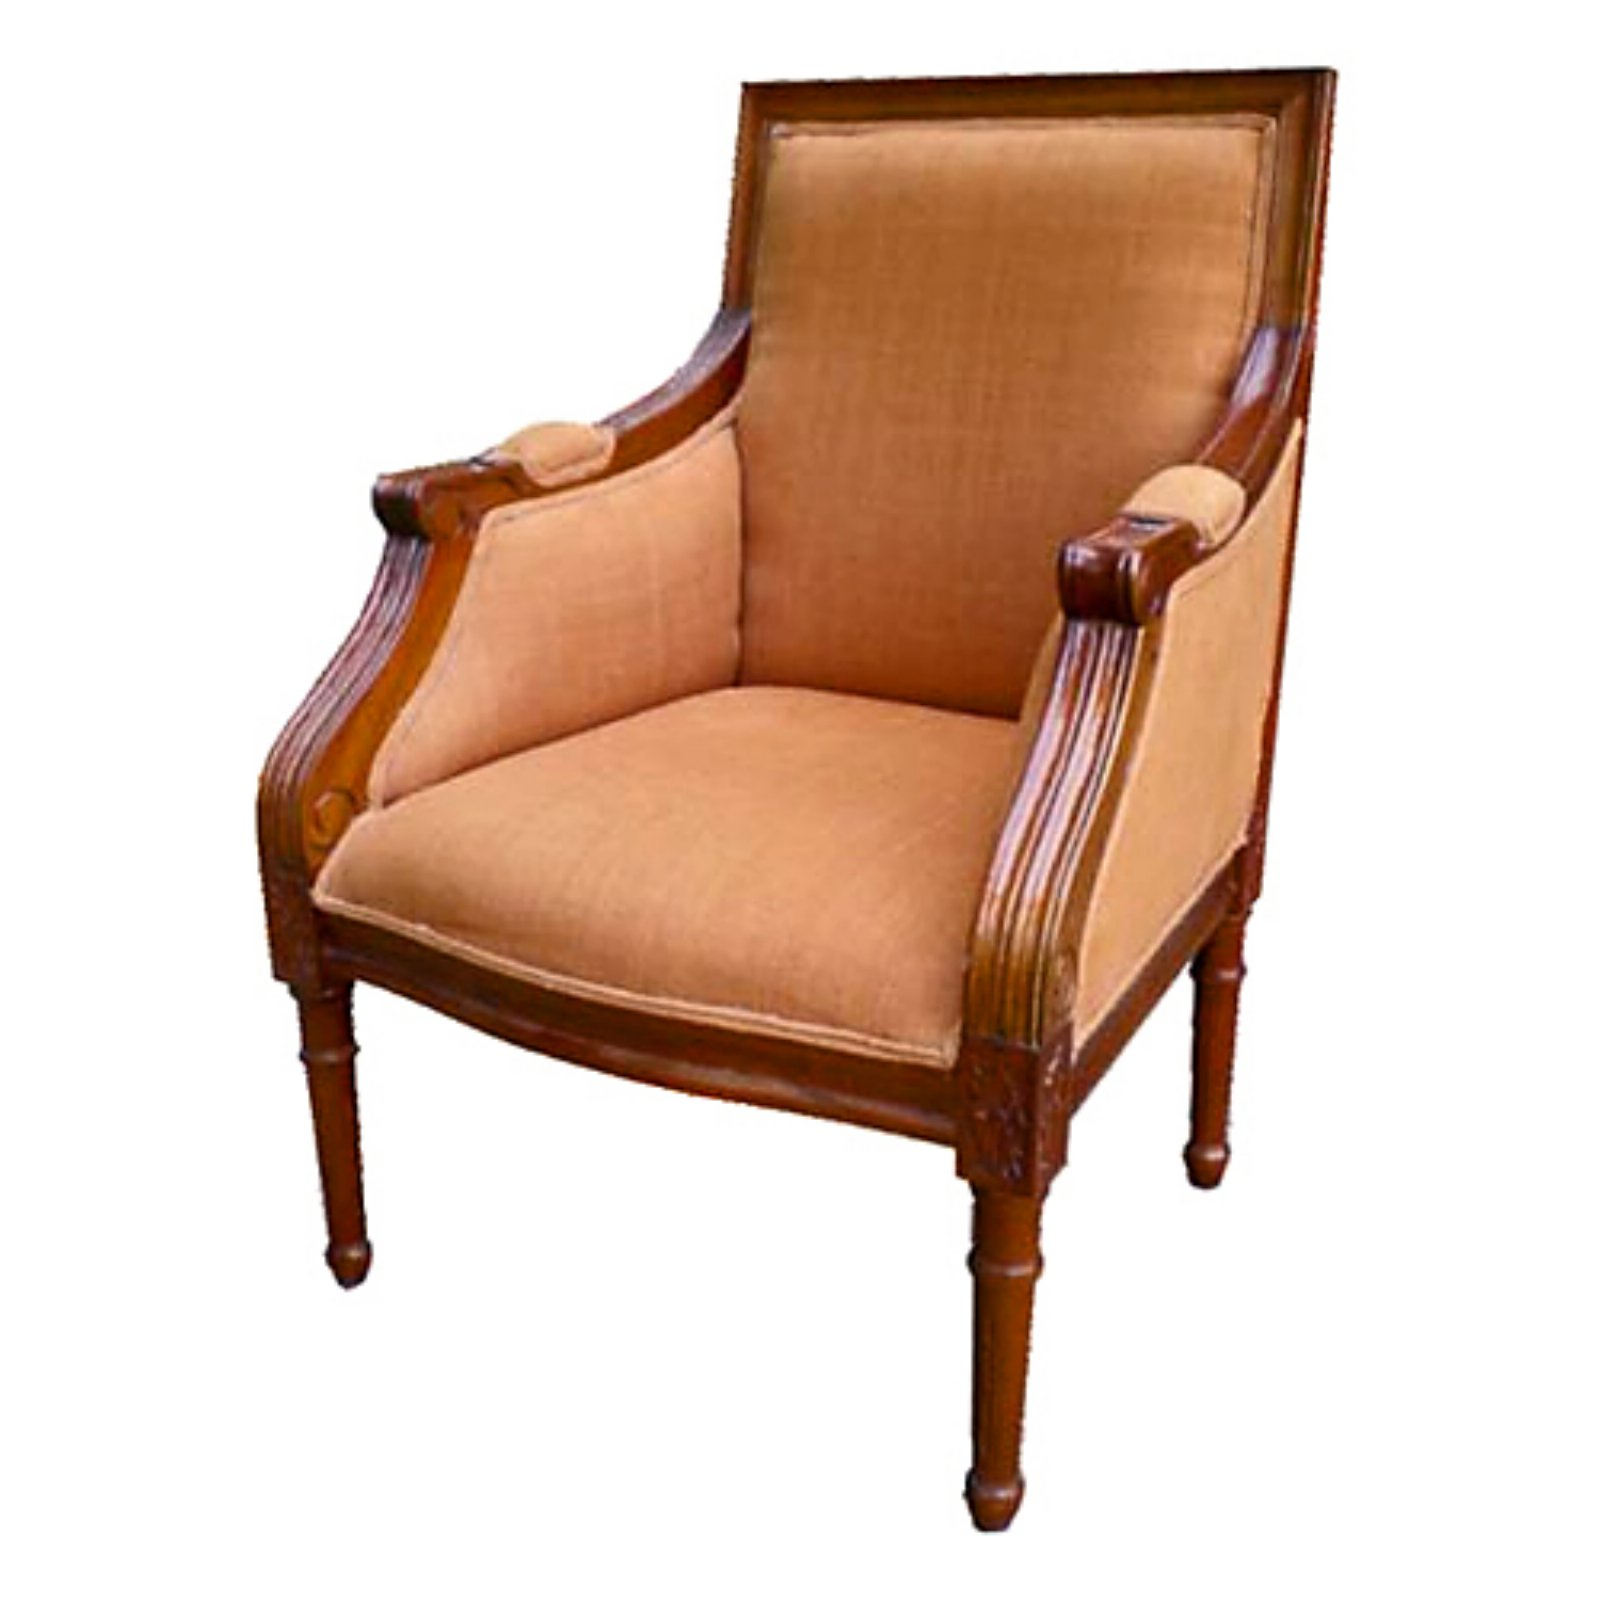 Child's French Chantilly Style Arm Chair